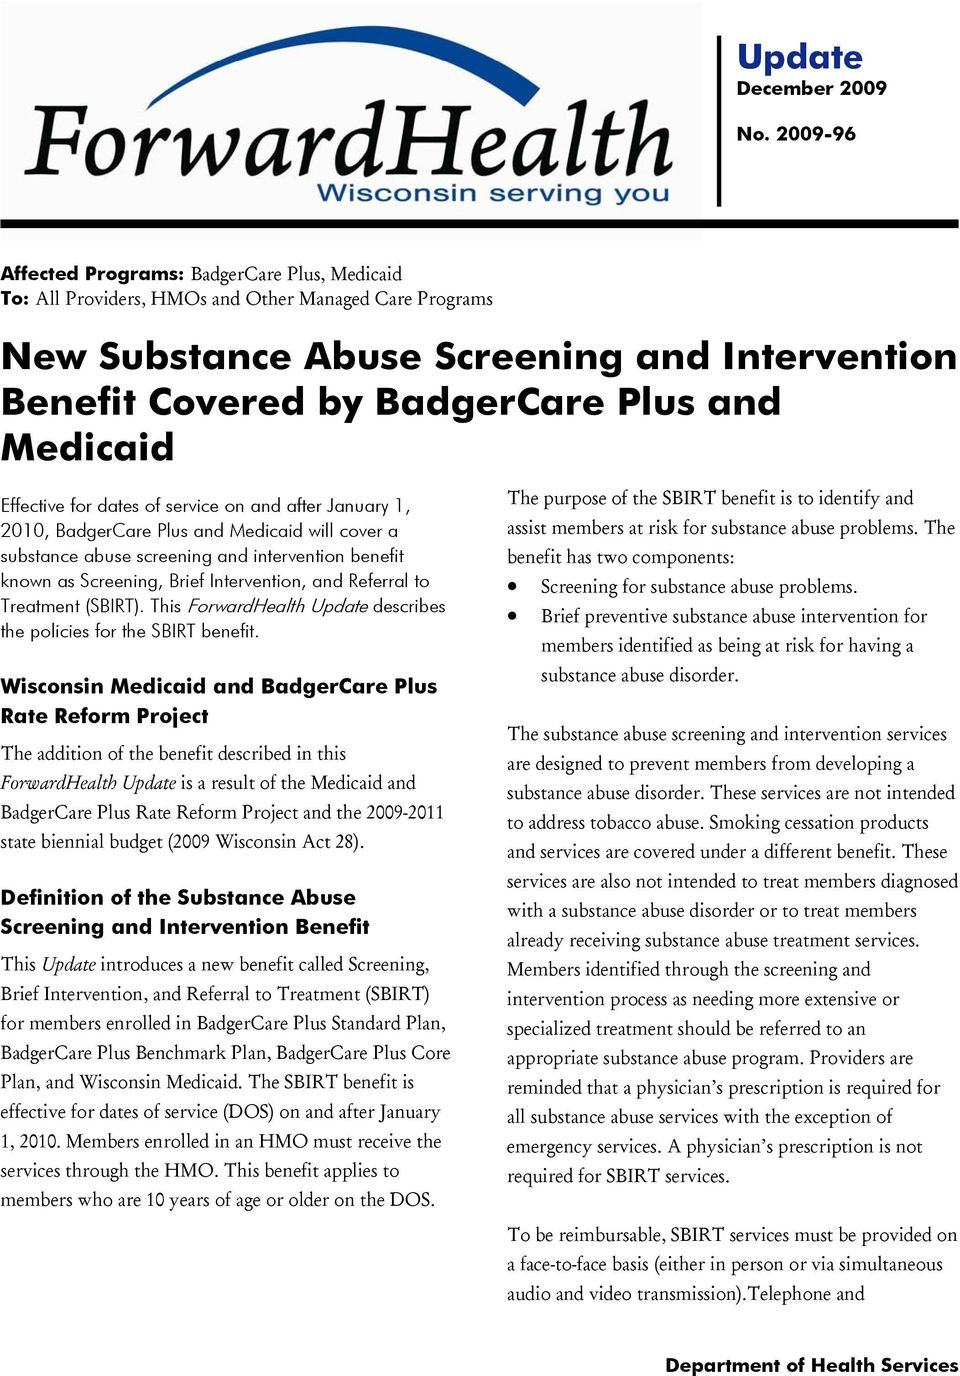 Medicaid Effective for dates of service on and after January 1, 2010, BadgerCare Plus and Medicaid will cover a substance abuse screening and intervention benefit known as Screening, Brief